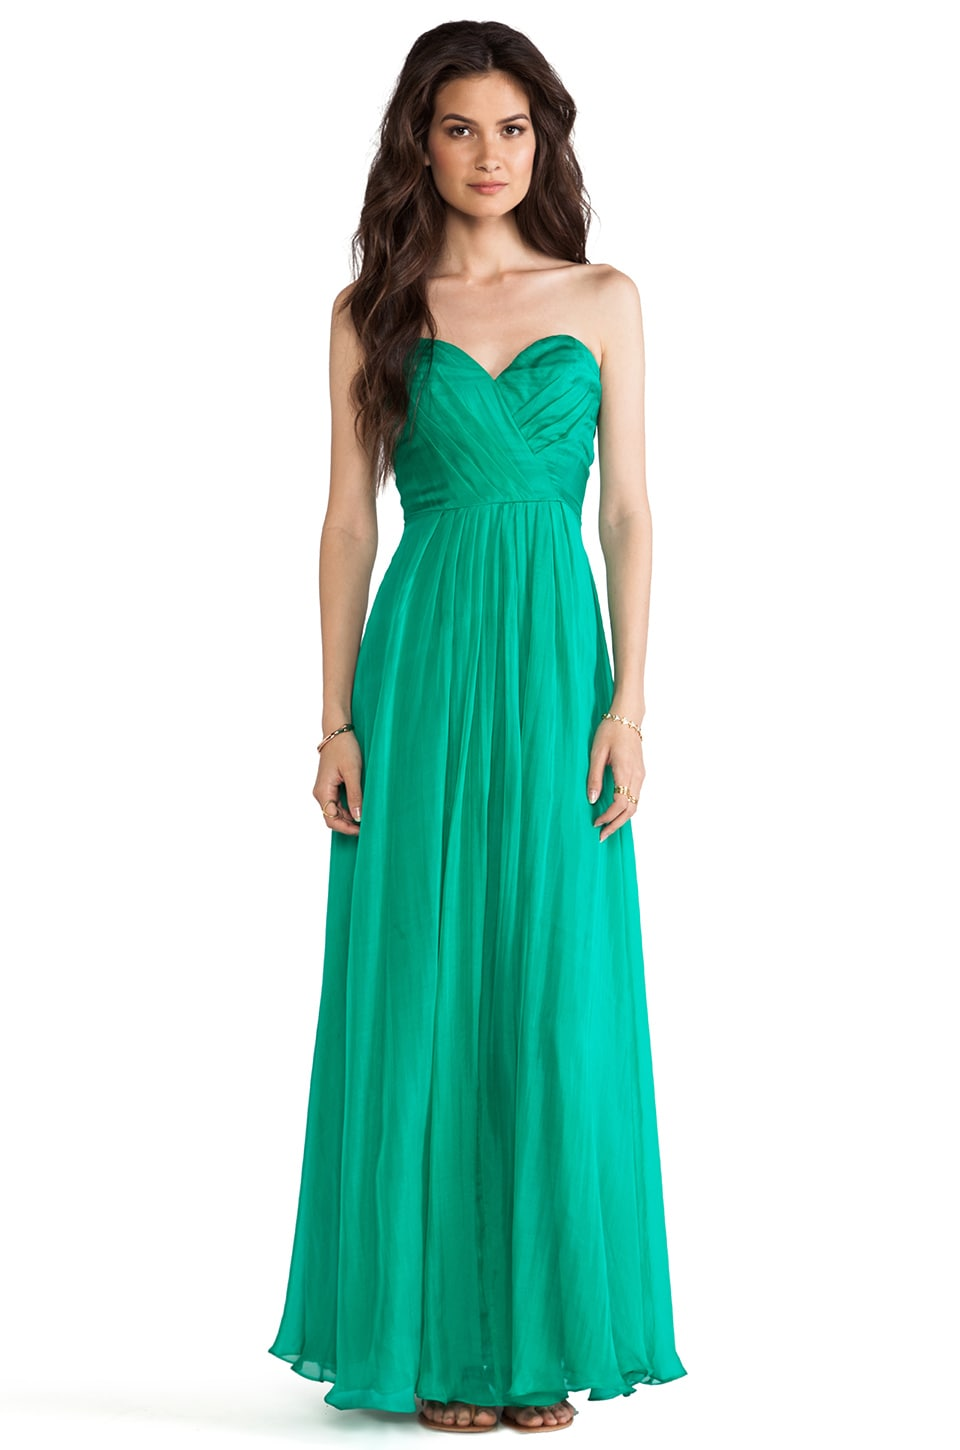 Wish Bella Maxi Dress in Amazon